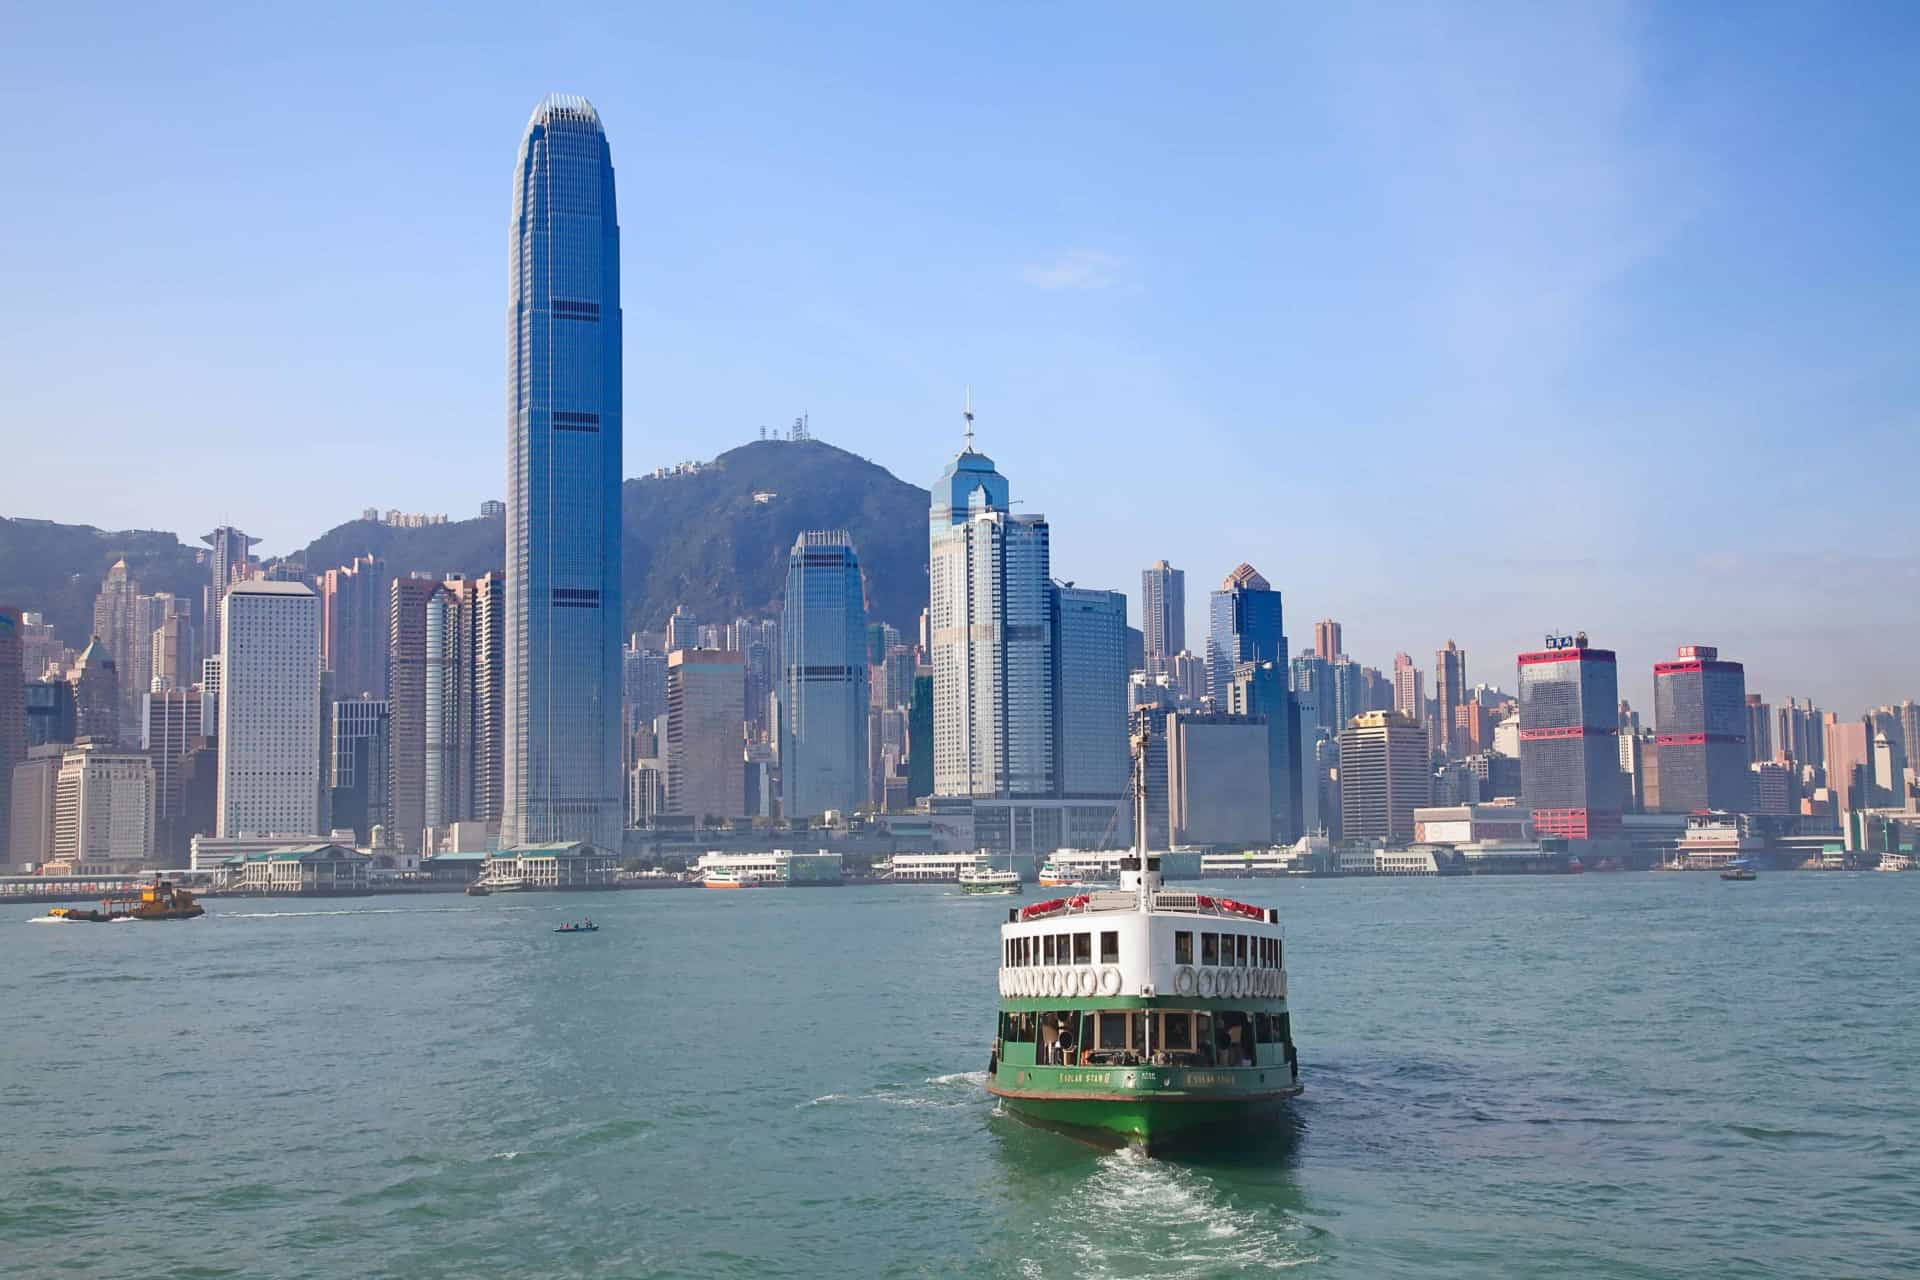 Hop on the Star Ferry to cross the harbor